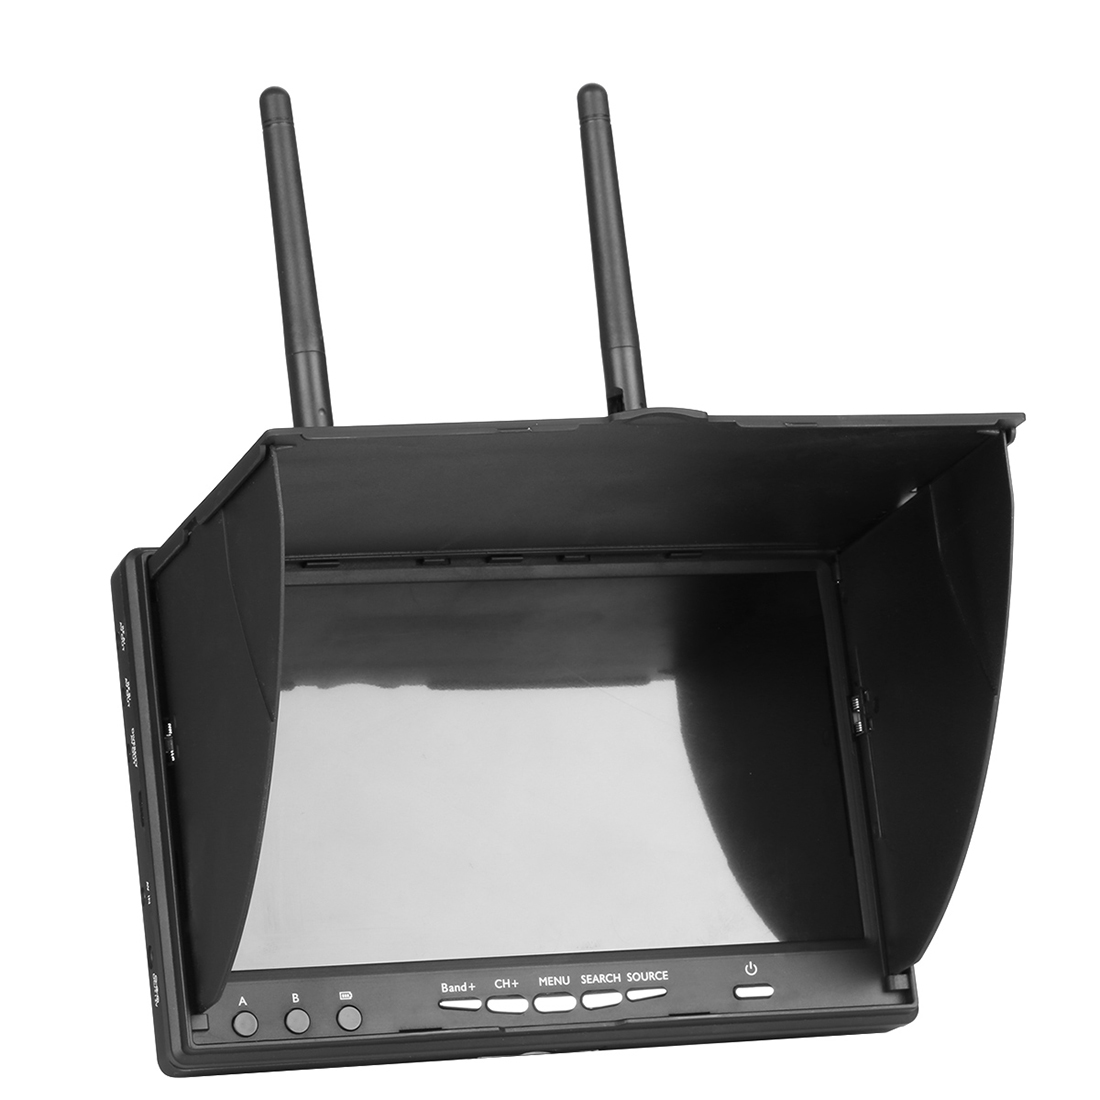 7 inch Double Receiving 5 8G 40CH AIO Display Screen with DVR Video for FPV Aerial